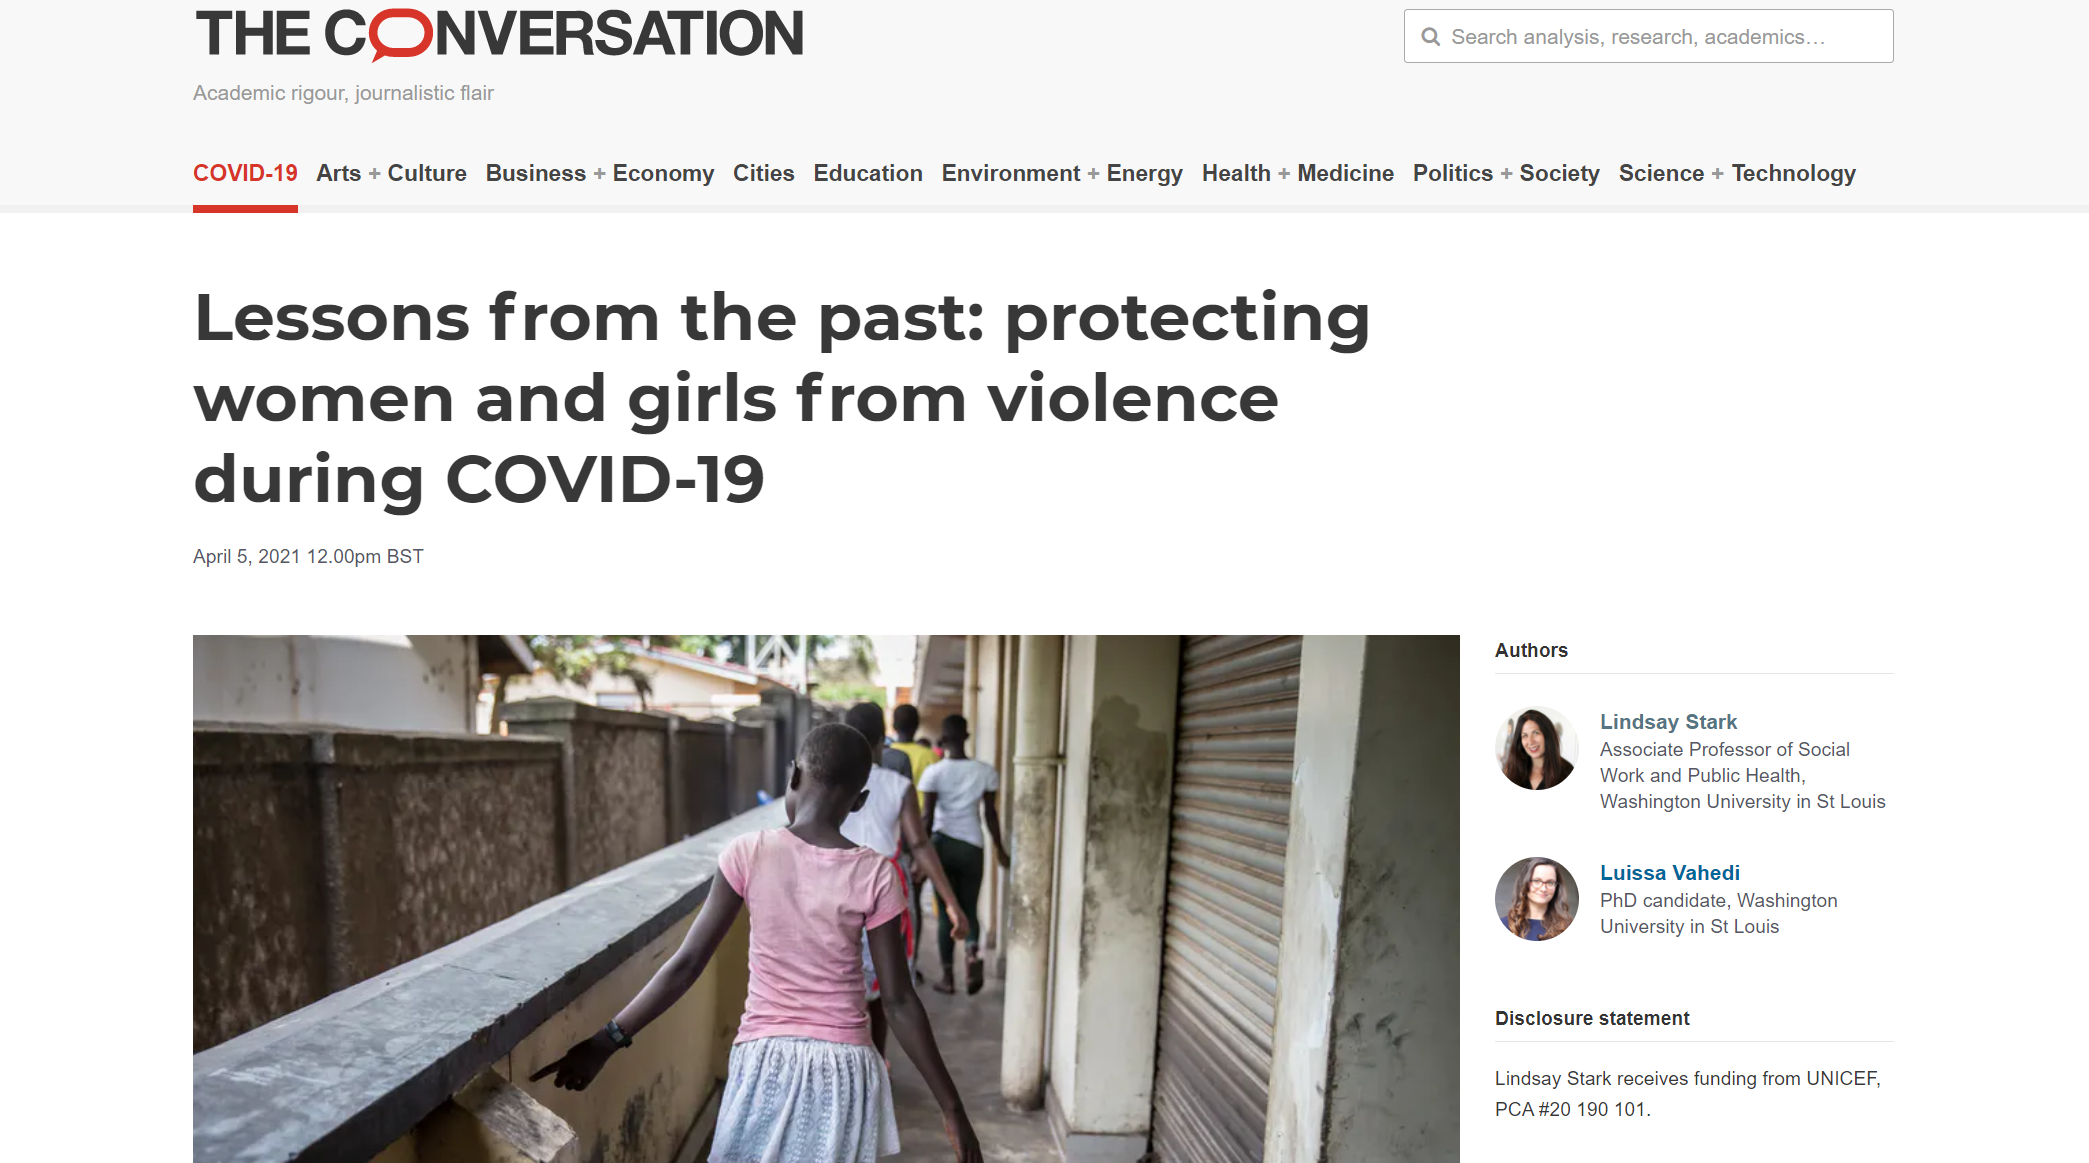 Lessons from the past protecting women and girls from violence